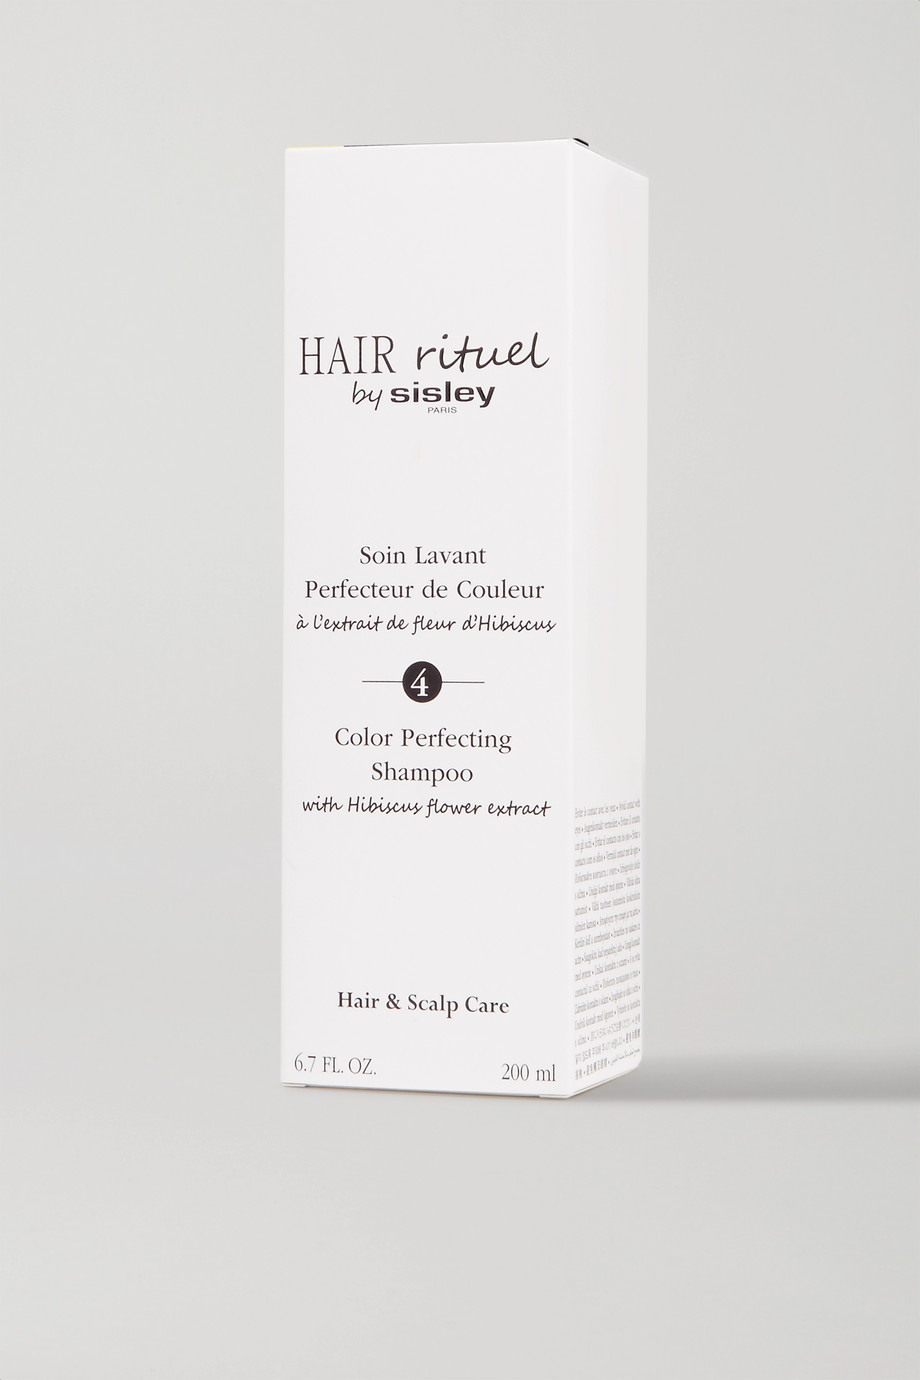 HAIR rituel by Sisley Color Perfecting Shampoo, 200ml